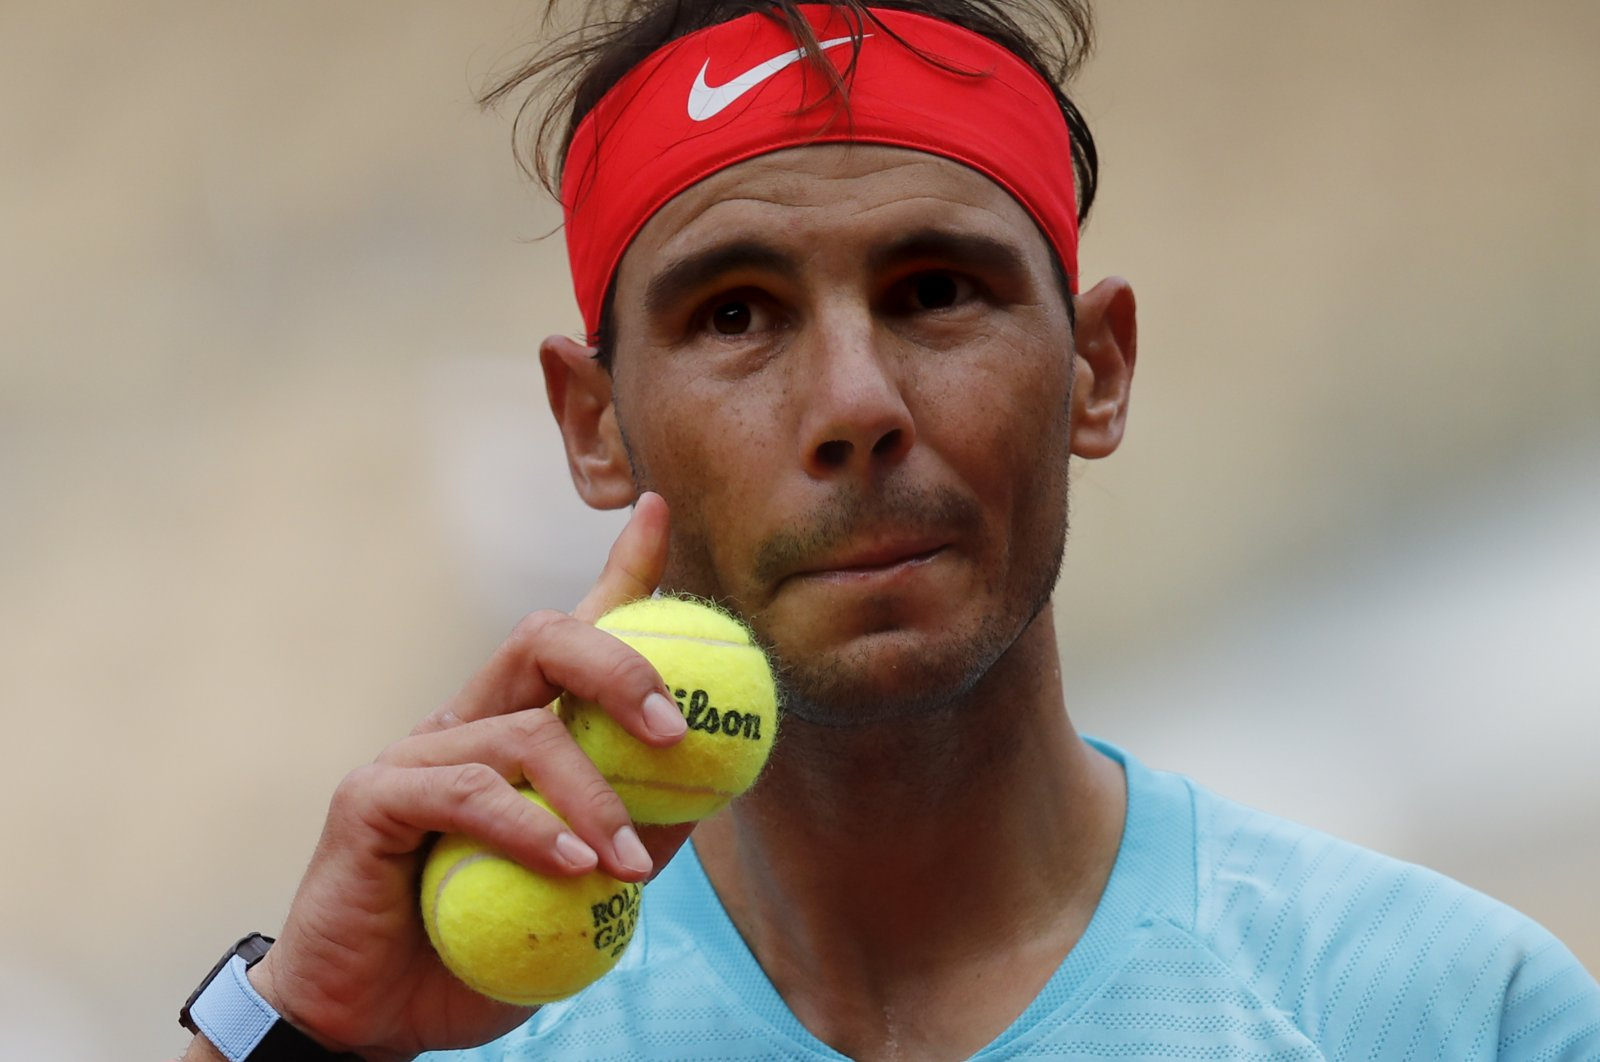 Rafael Nadal prepares to serve against Mackenzie McDonald during a French Open tennis match in Paris, France, Sept. 30, 2020. (AFP Photo)